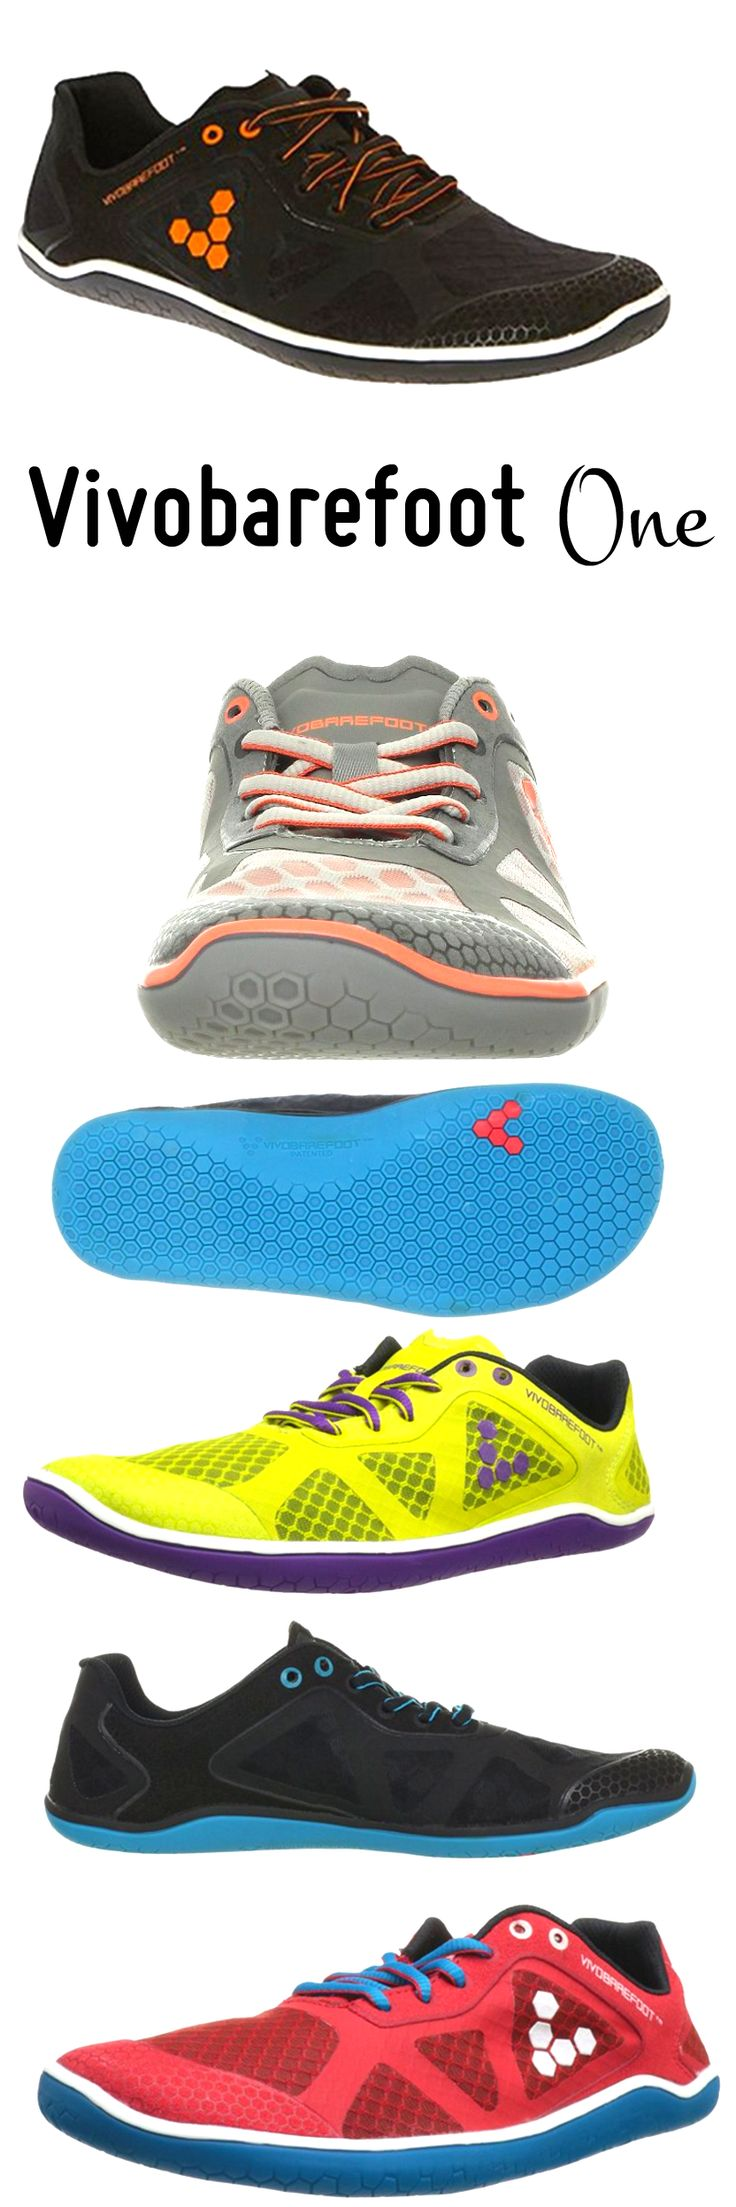 Vivobarefoot One Review for Running - Excellent high performance minimalist running shoe that helps strengthen your feet.